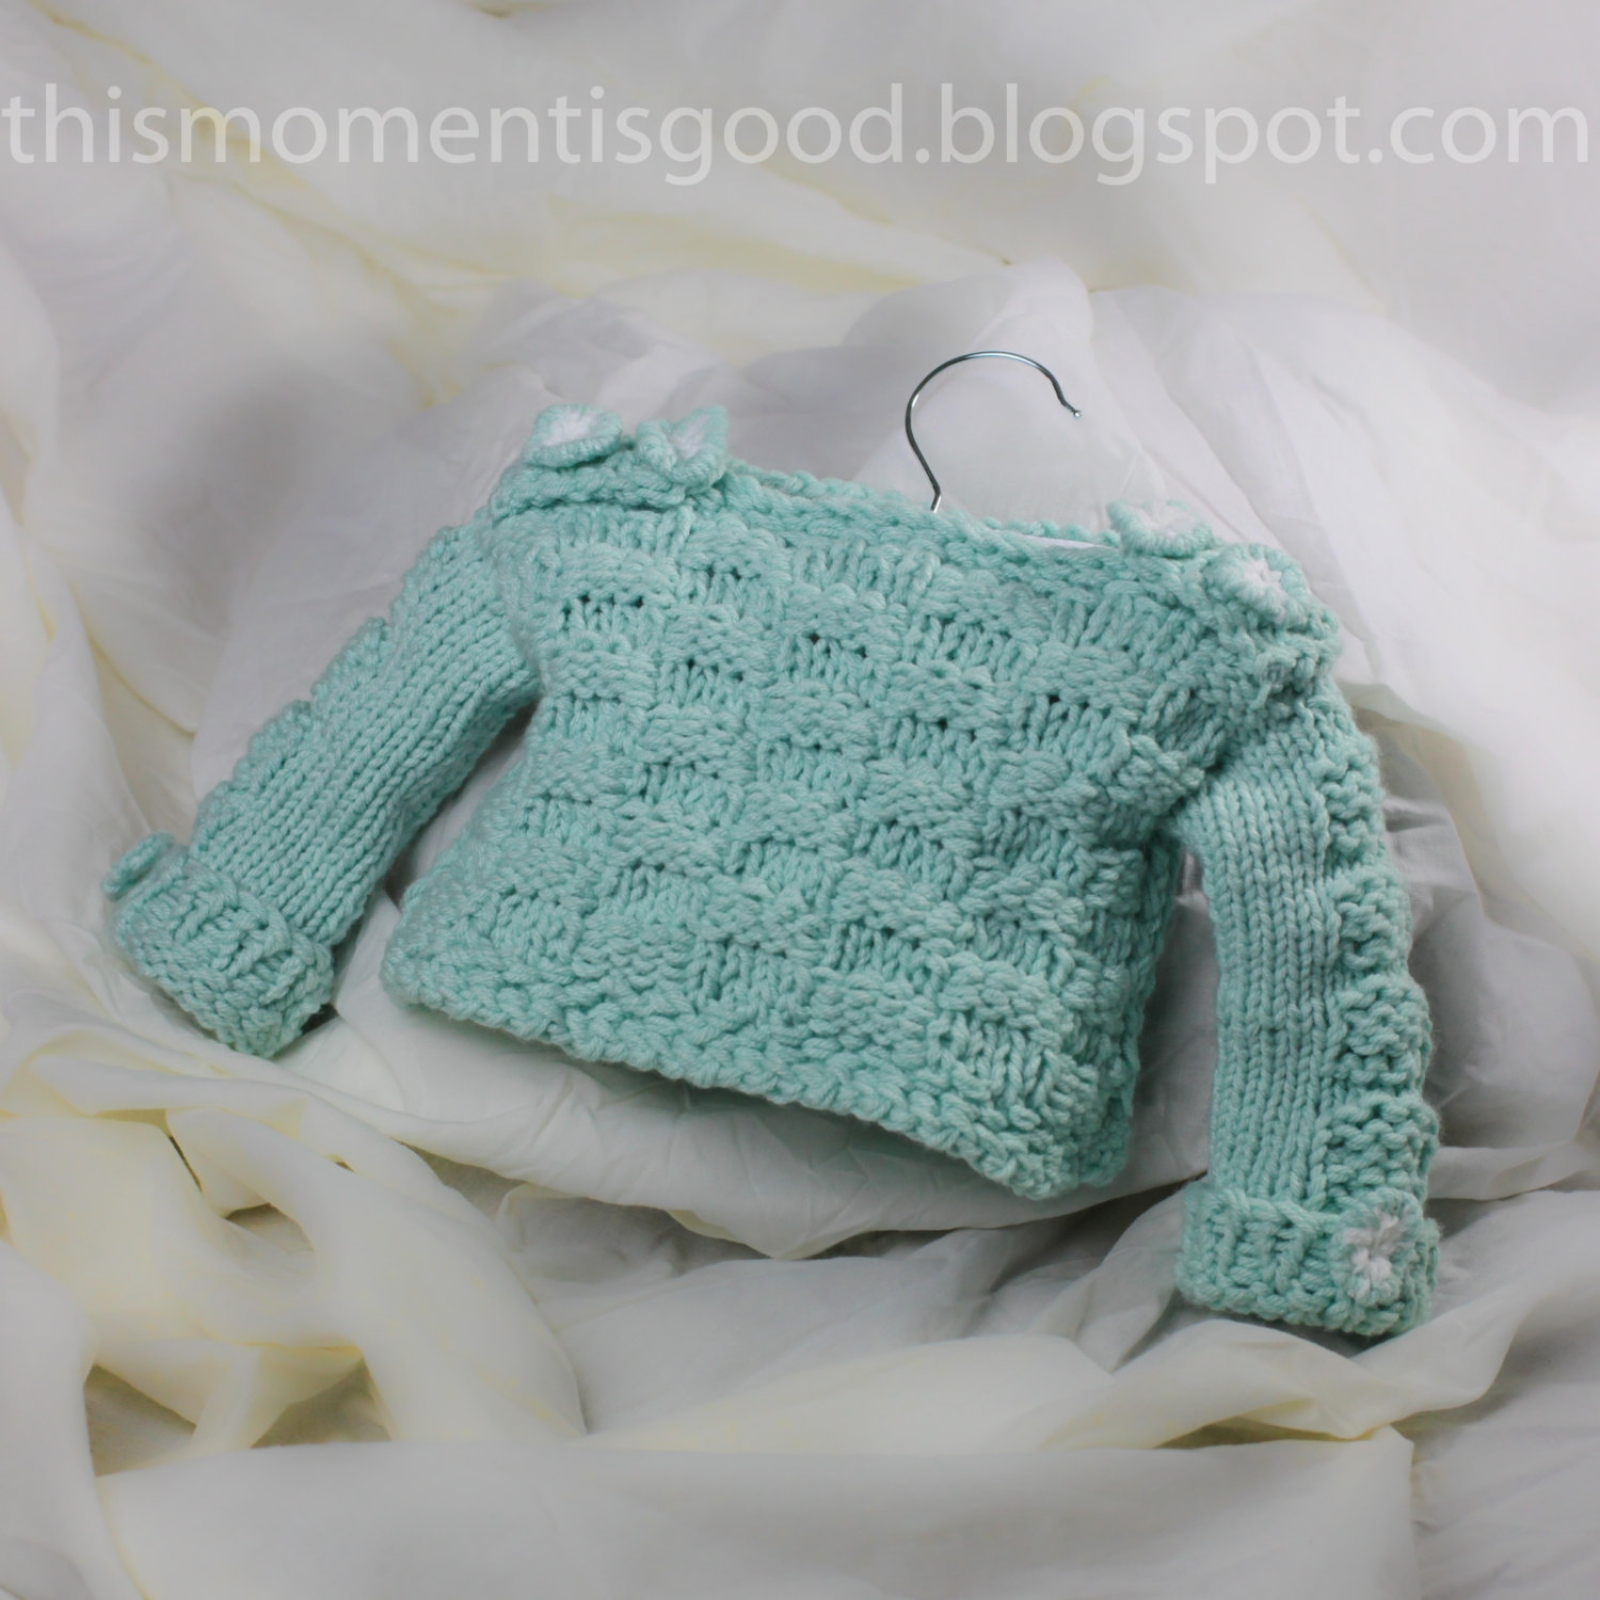 Loom Knit Baby Sweater Pattern: Checkerboard Pattern on Sleeves and ...